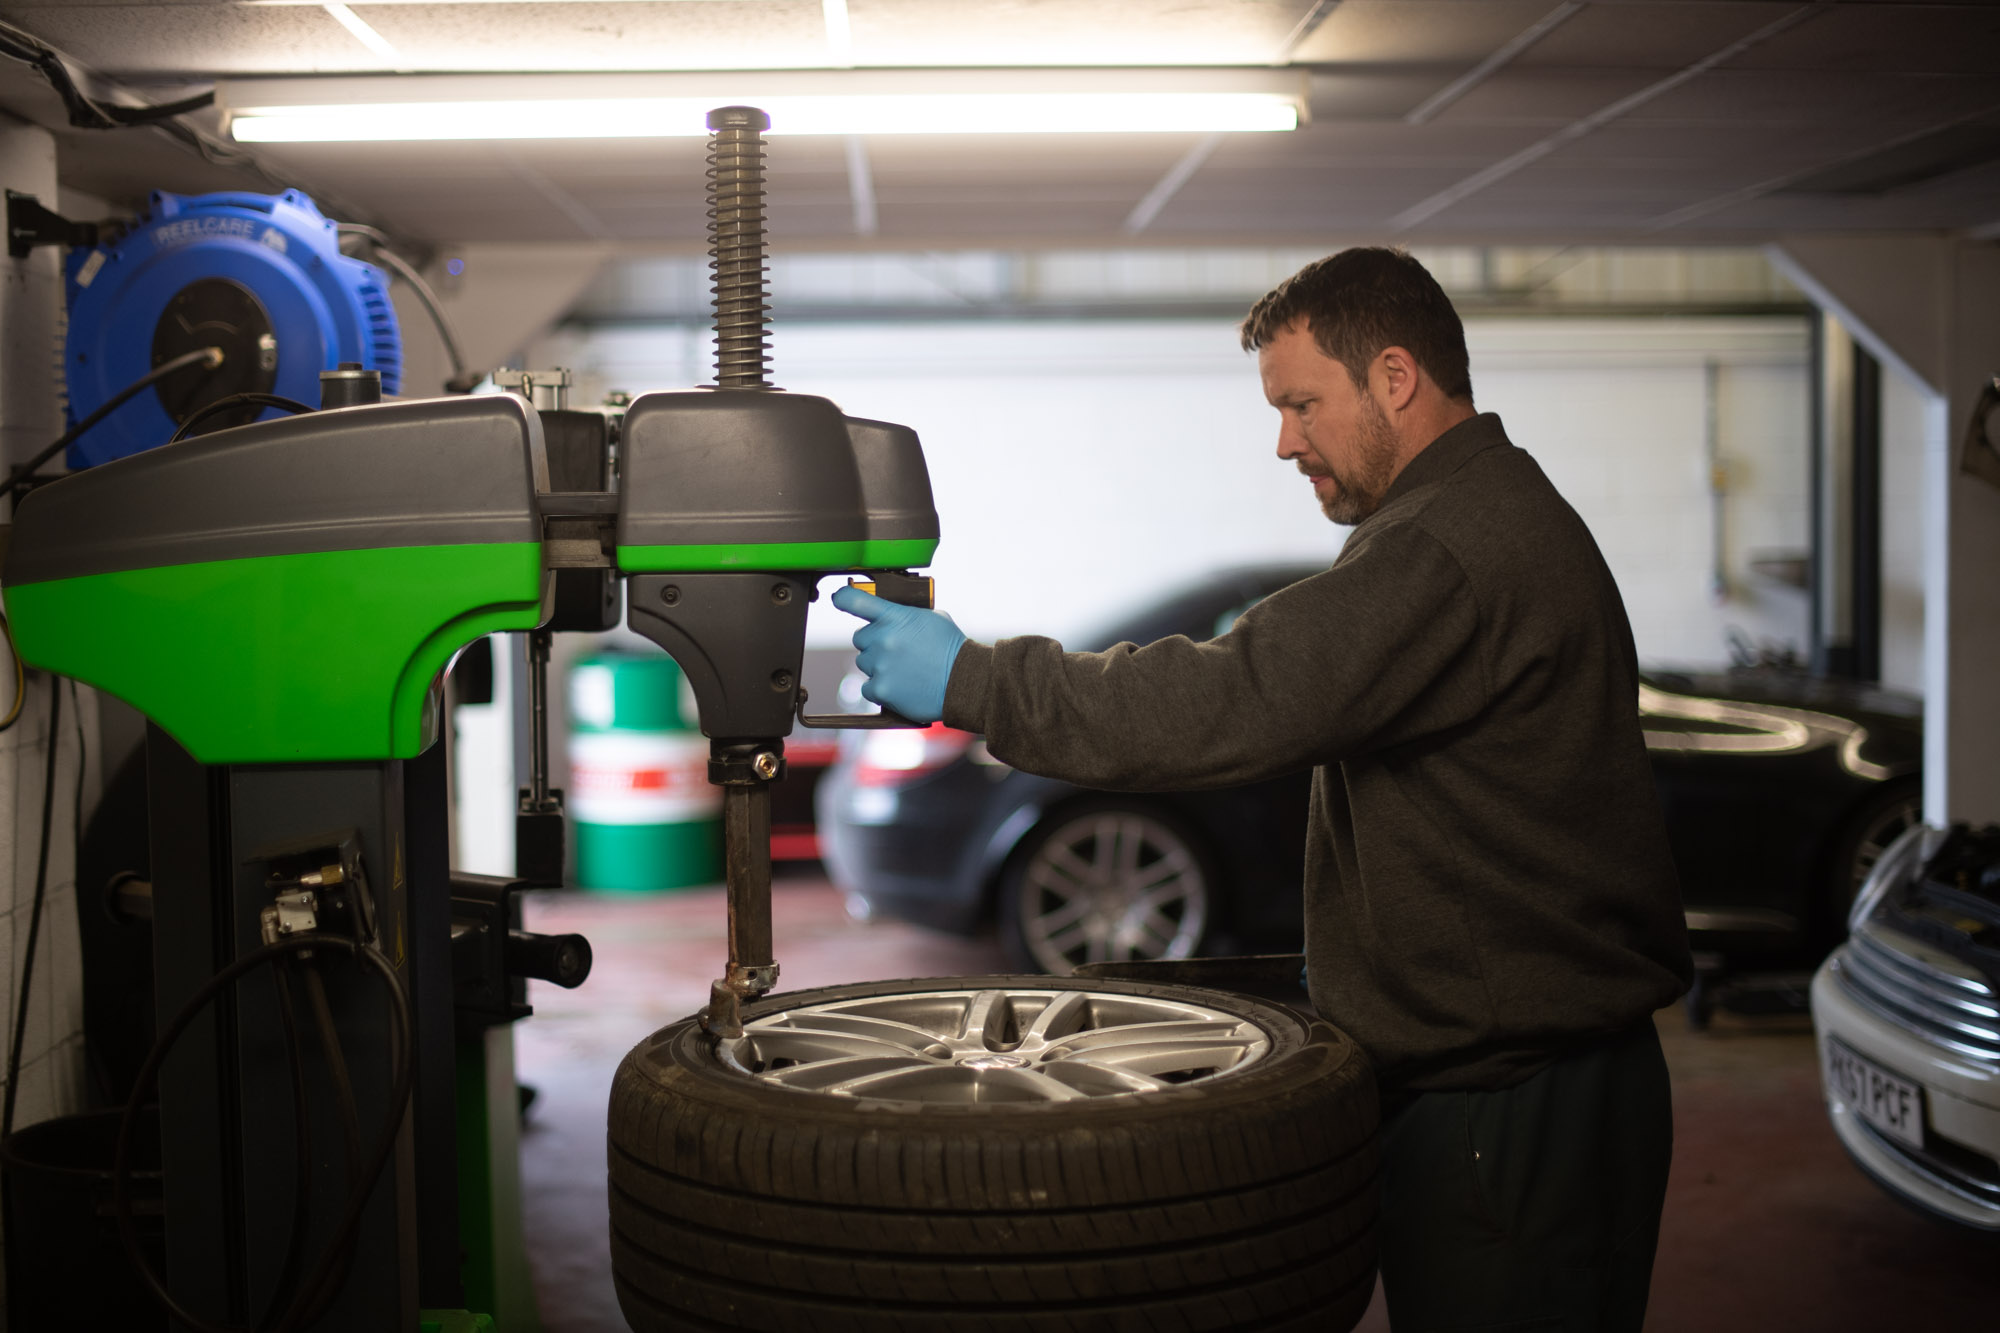 Tyre fitting, repairs and replacement at Autotechnics Blandford